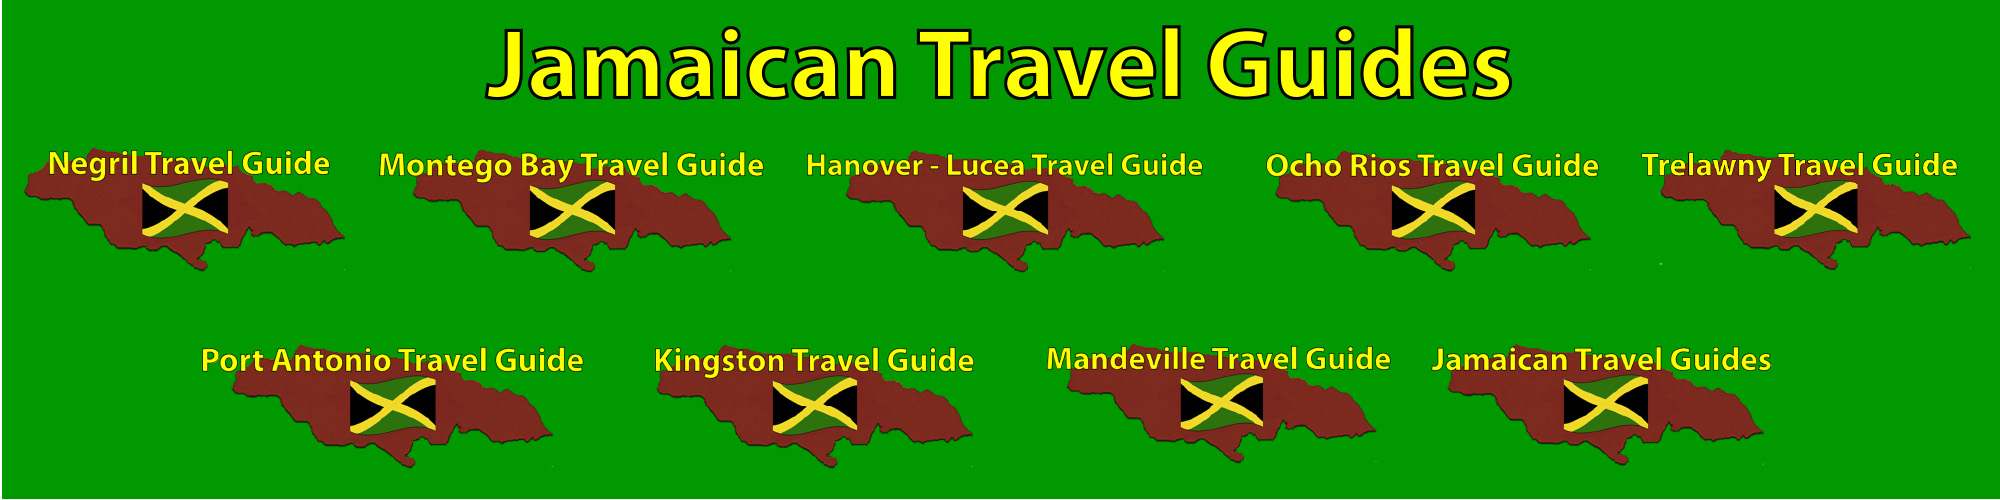 Jamaican Travel Guides